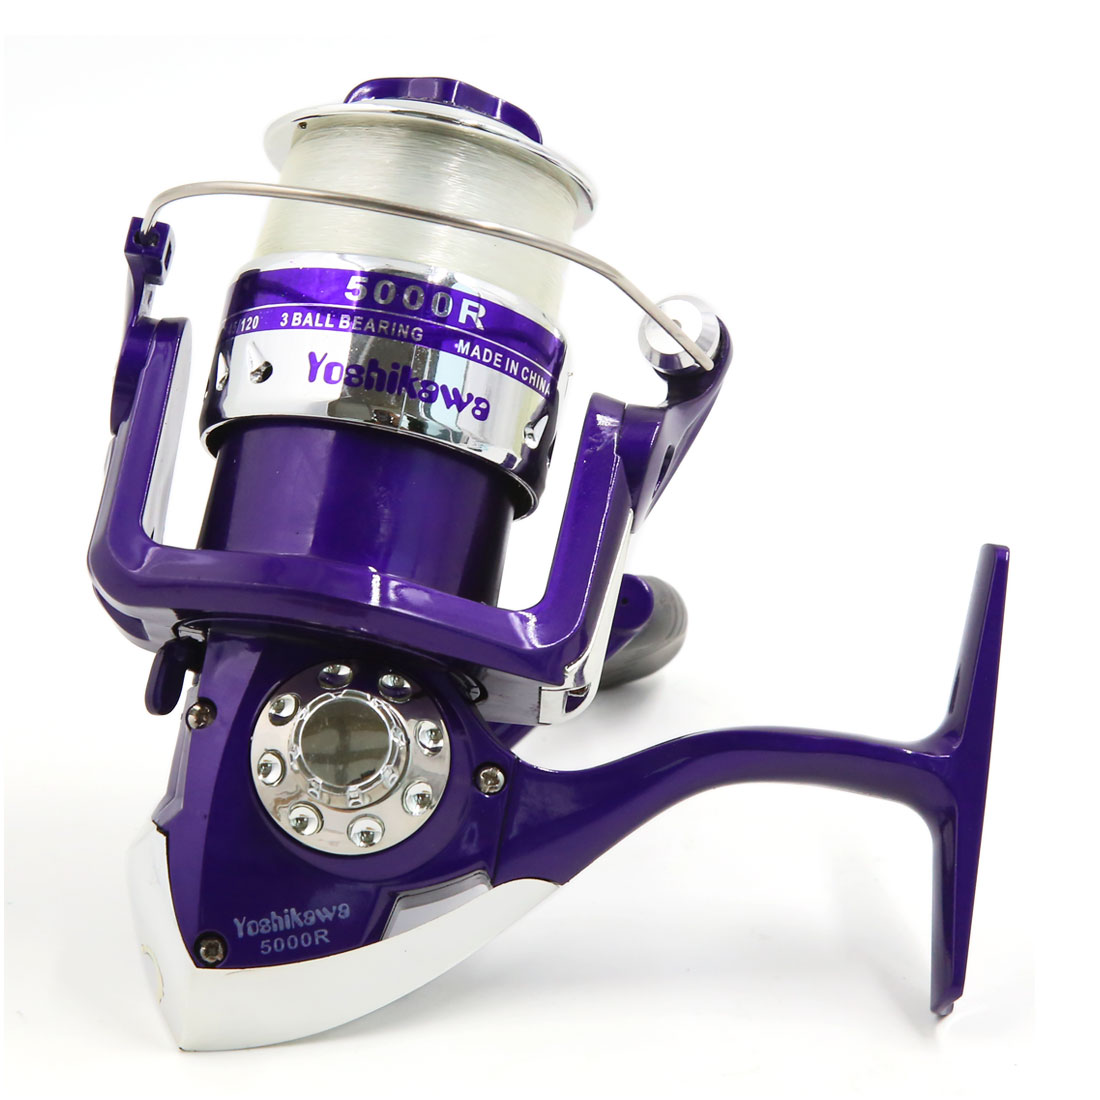 5000R 4.7:1 Gear Ratio 3 Ball Bearings Metal Fishing Spinning Reel Purple Sliver Tone